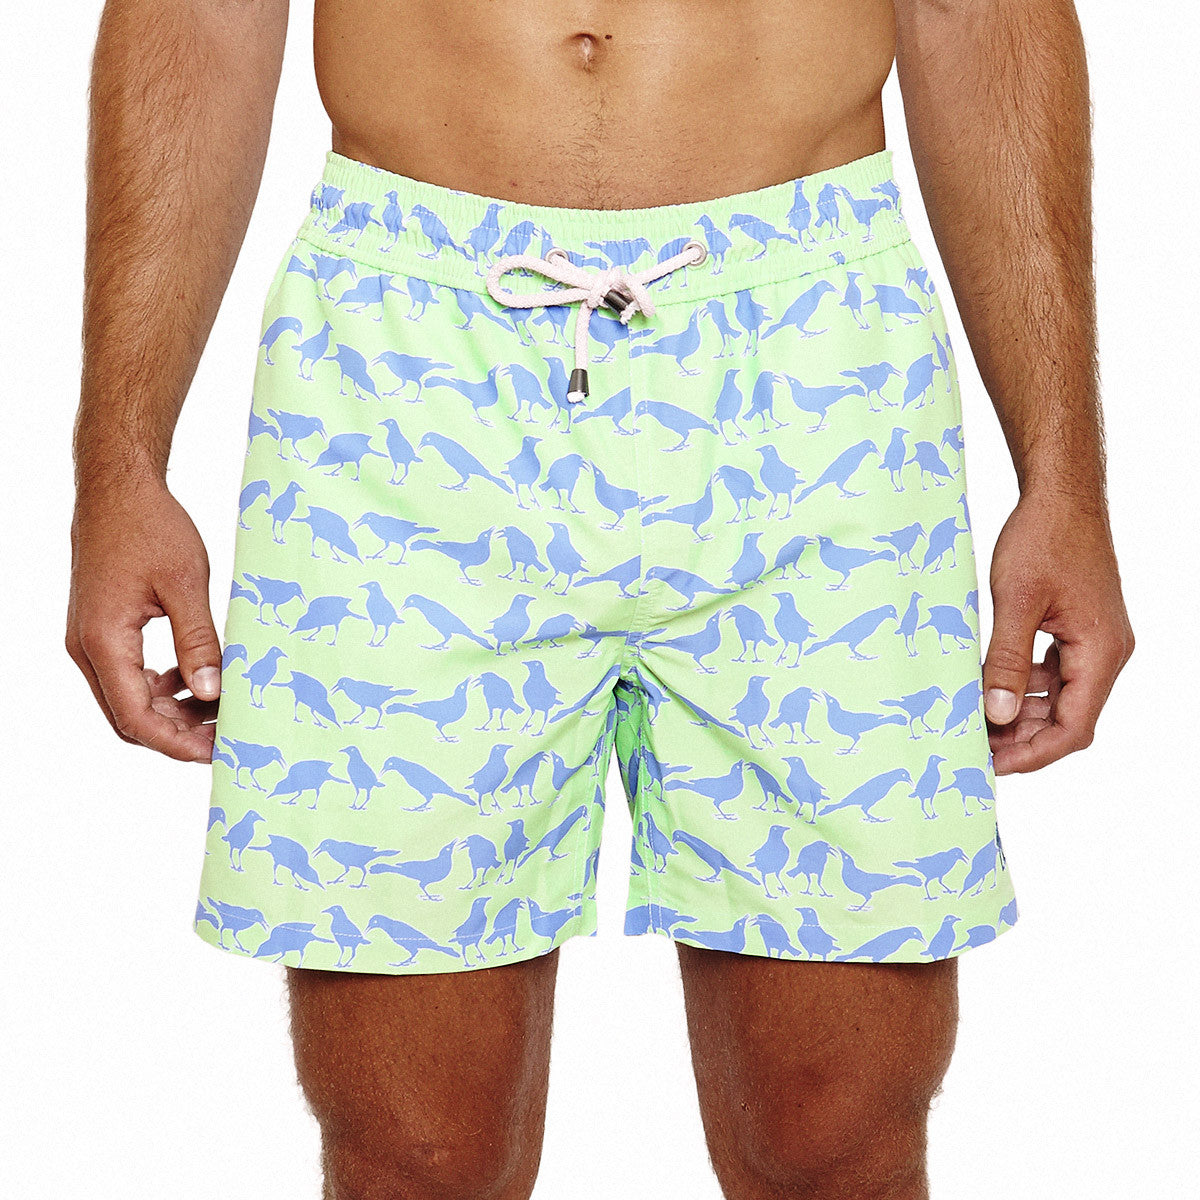 Mens Trunks (Grackle Green) Front